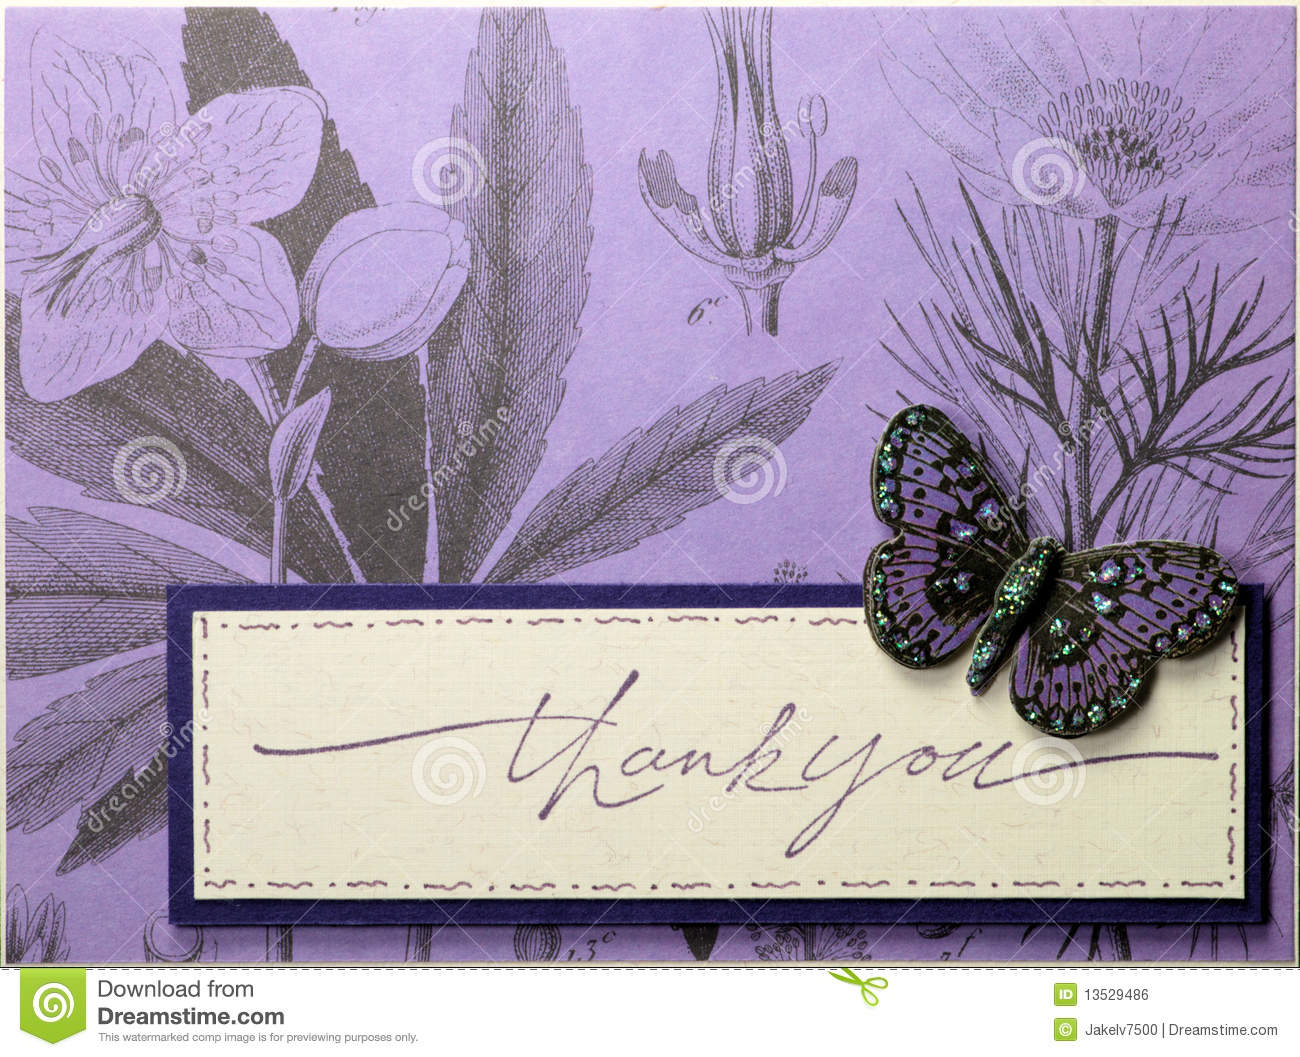 Papercraft greeting card face royalty free stock image for Craft paper card stock